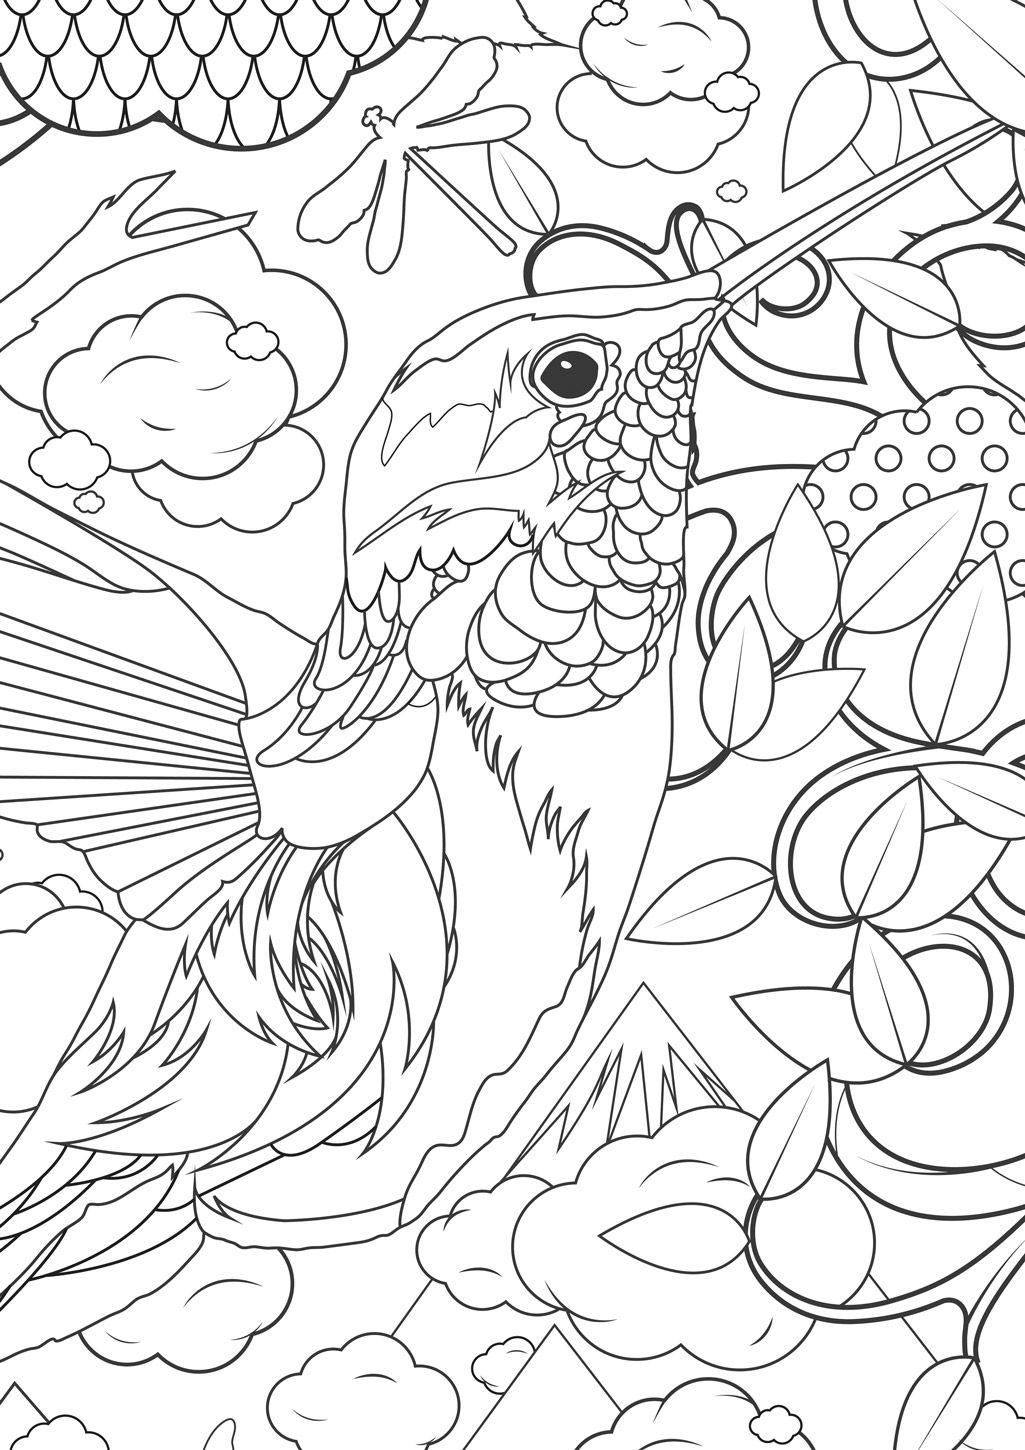 Coloring Pages Free Fun Coloring Pages 1000 images about coloring pages on pinterest cats and free printable pages